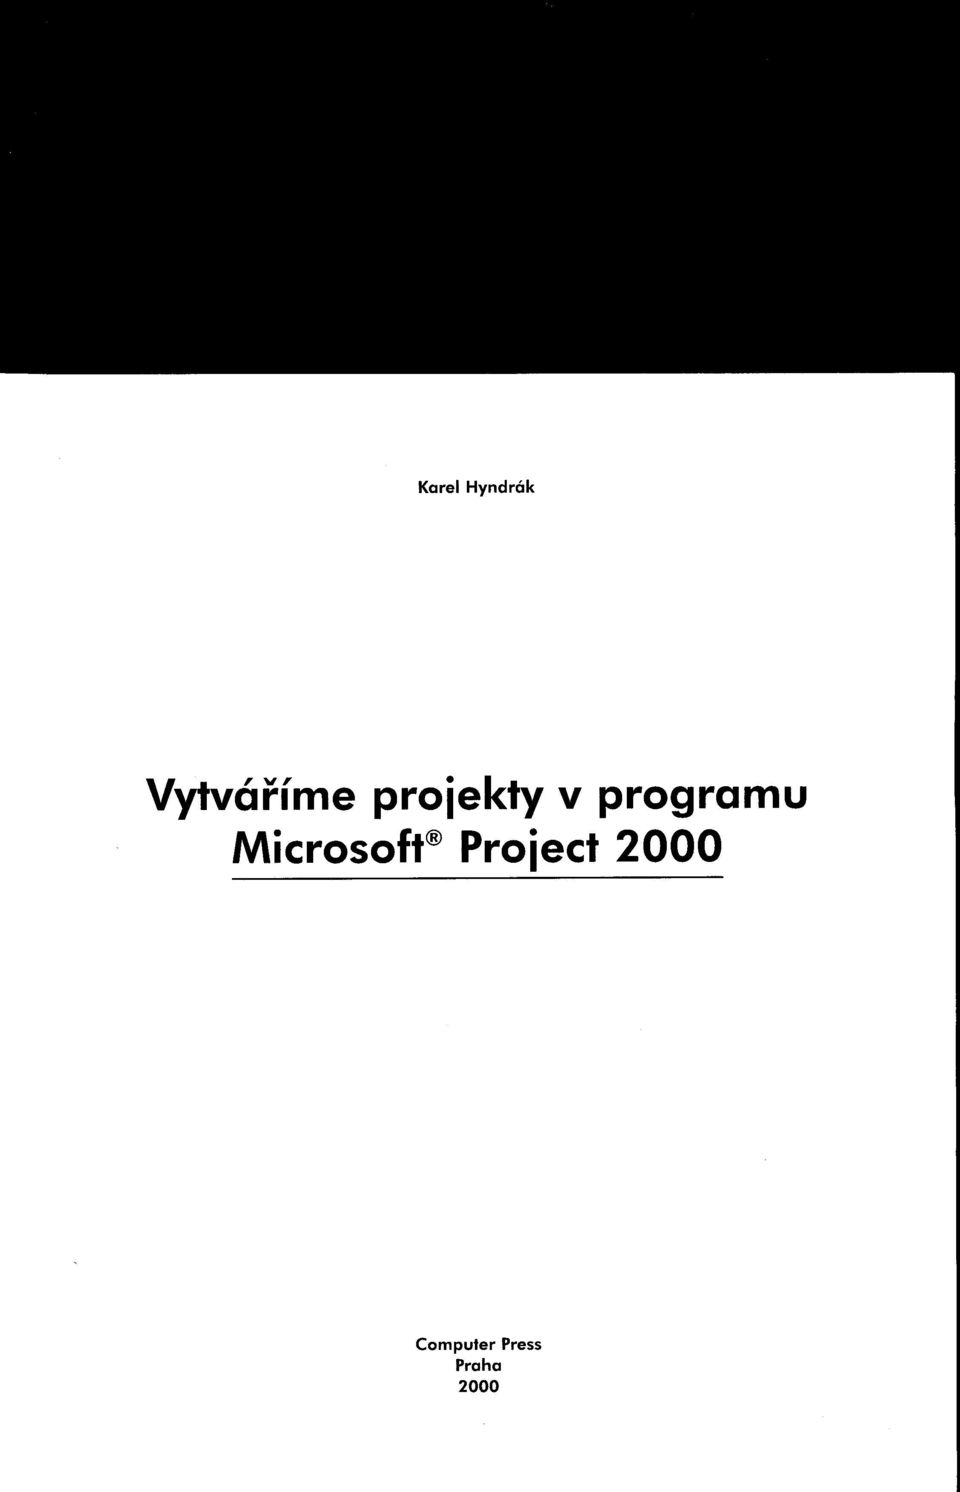 Microsoft' Prolect 2000